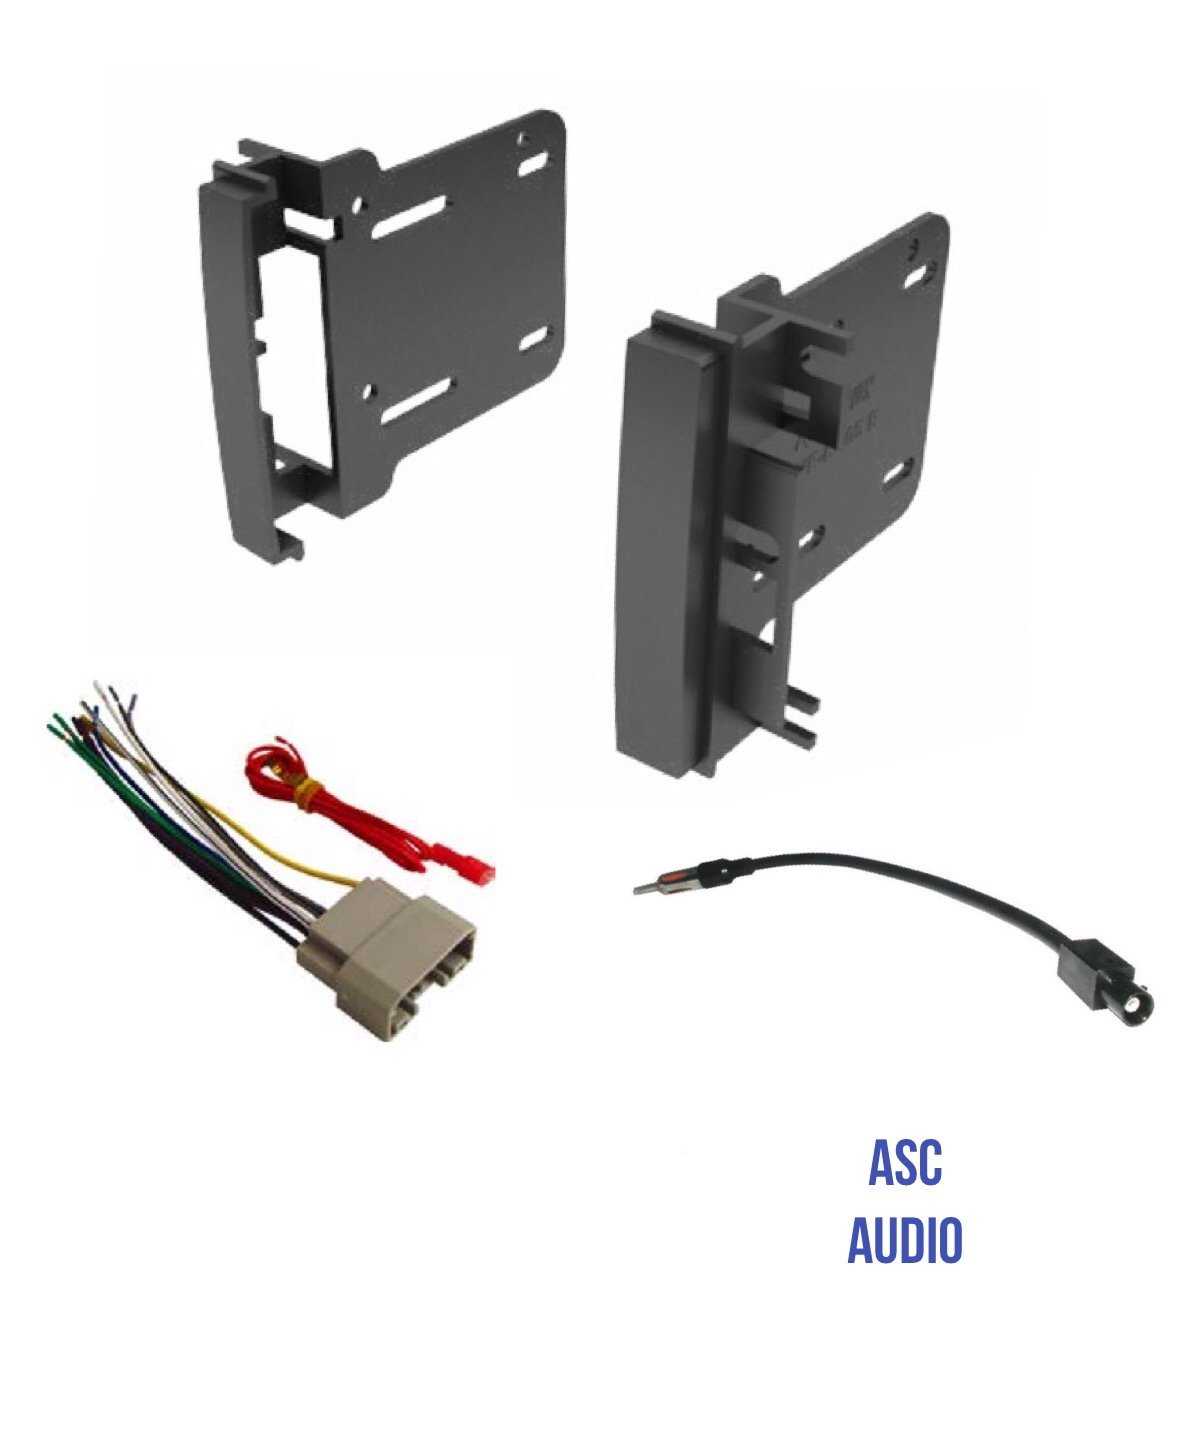 ASC Audio Car Stereo Radio Install Dash Kit, Wire Harness, and Antenna Adapter to Add a Double Din Radio for some 2007-2016 Chrysler Dodge Jeep- Vehicles listed below